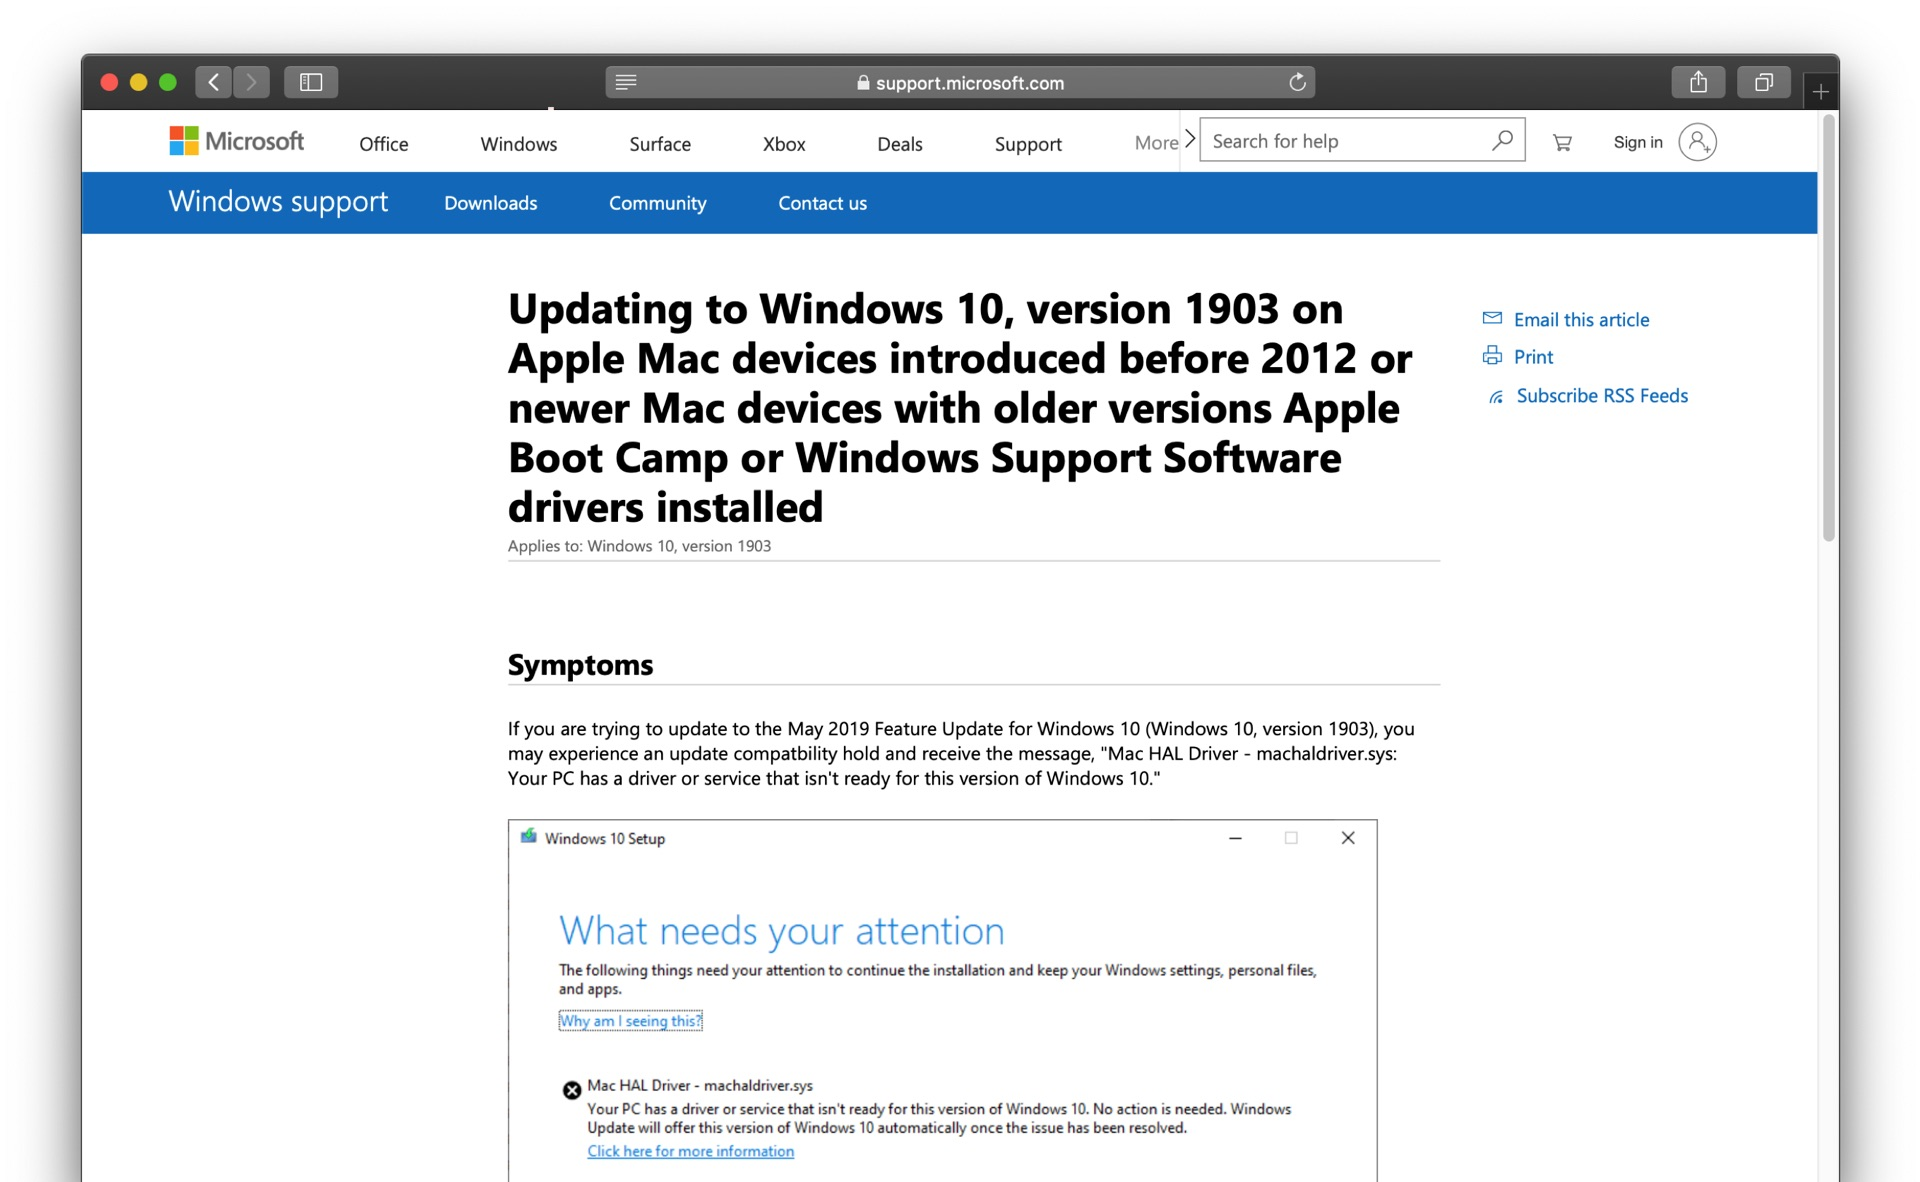 Windows 10 version 1903 and before 2012 Mac issue